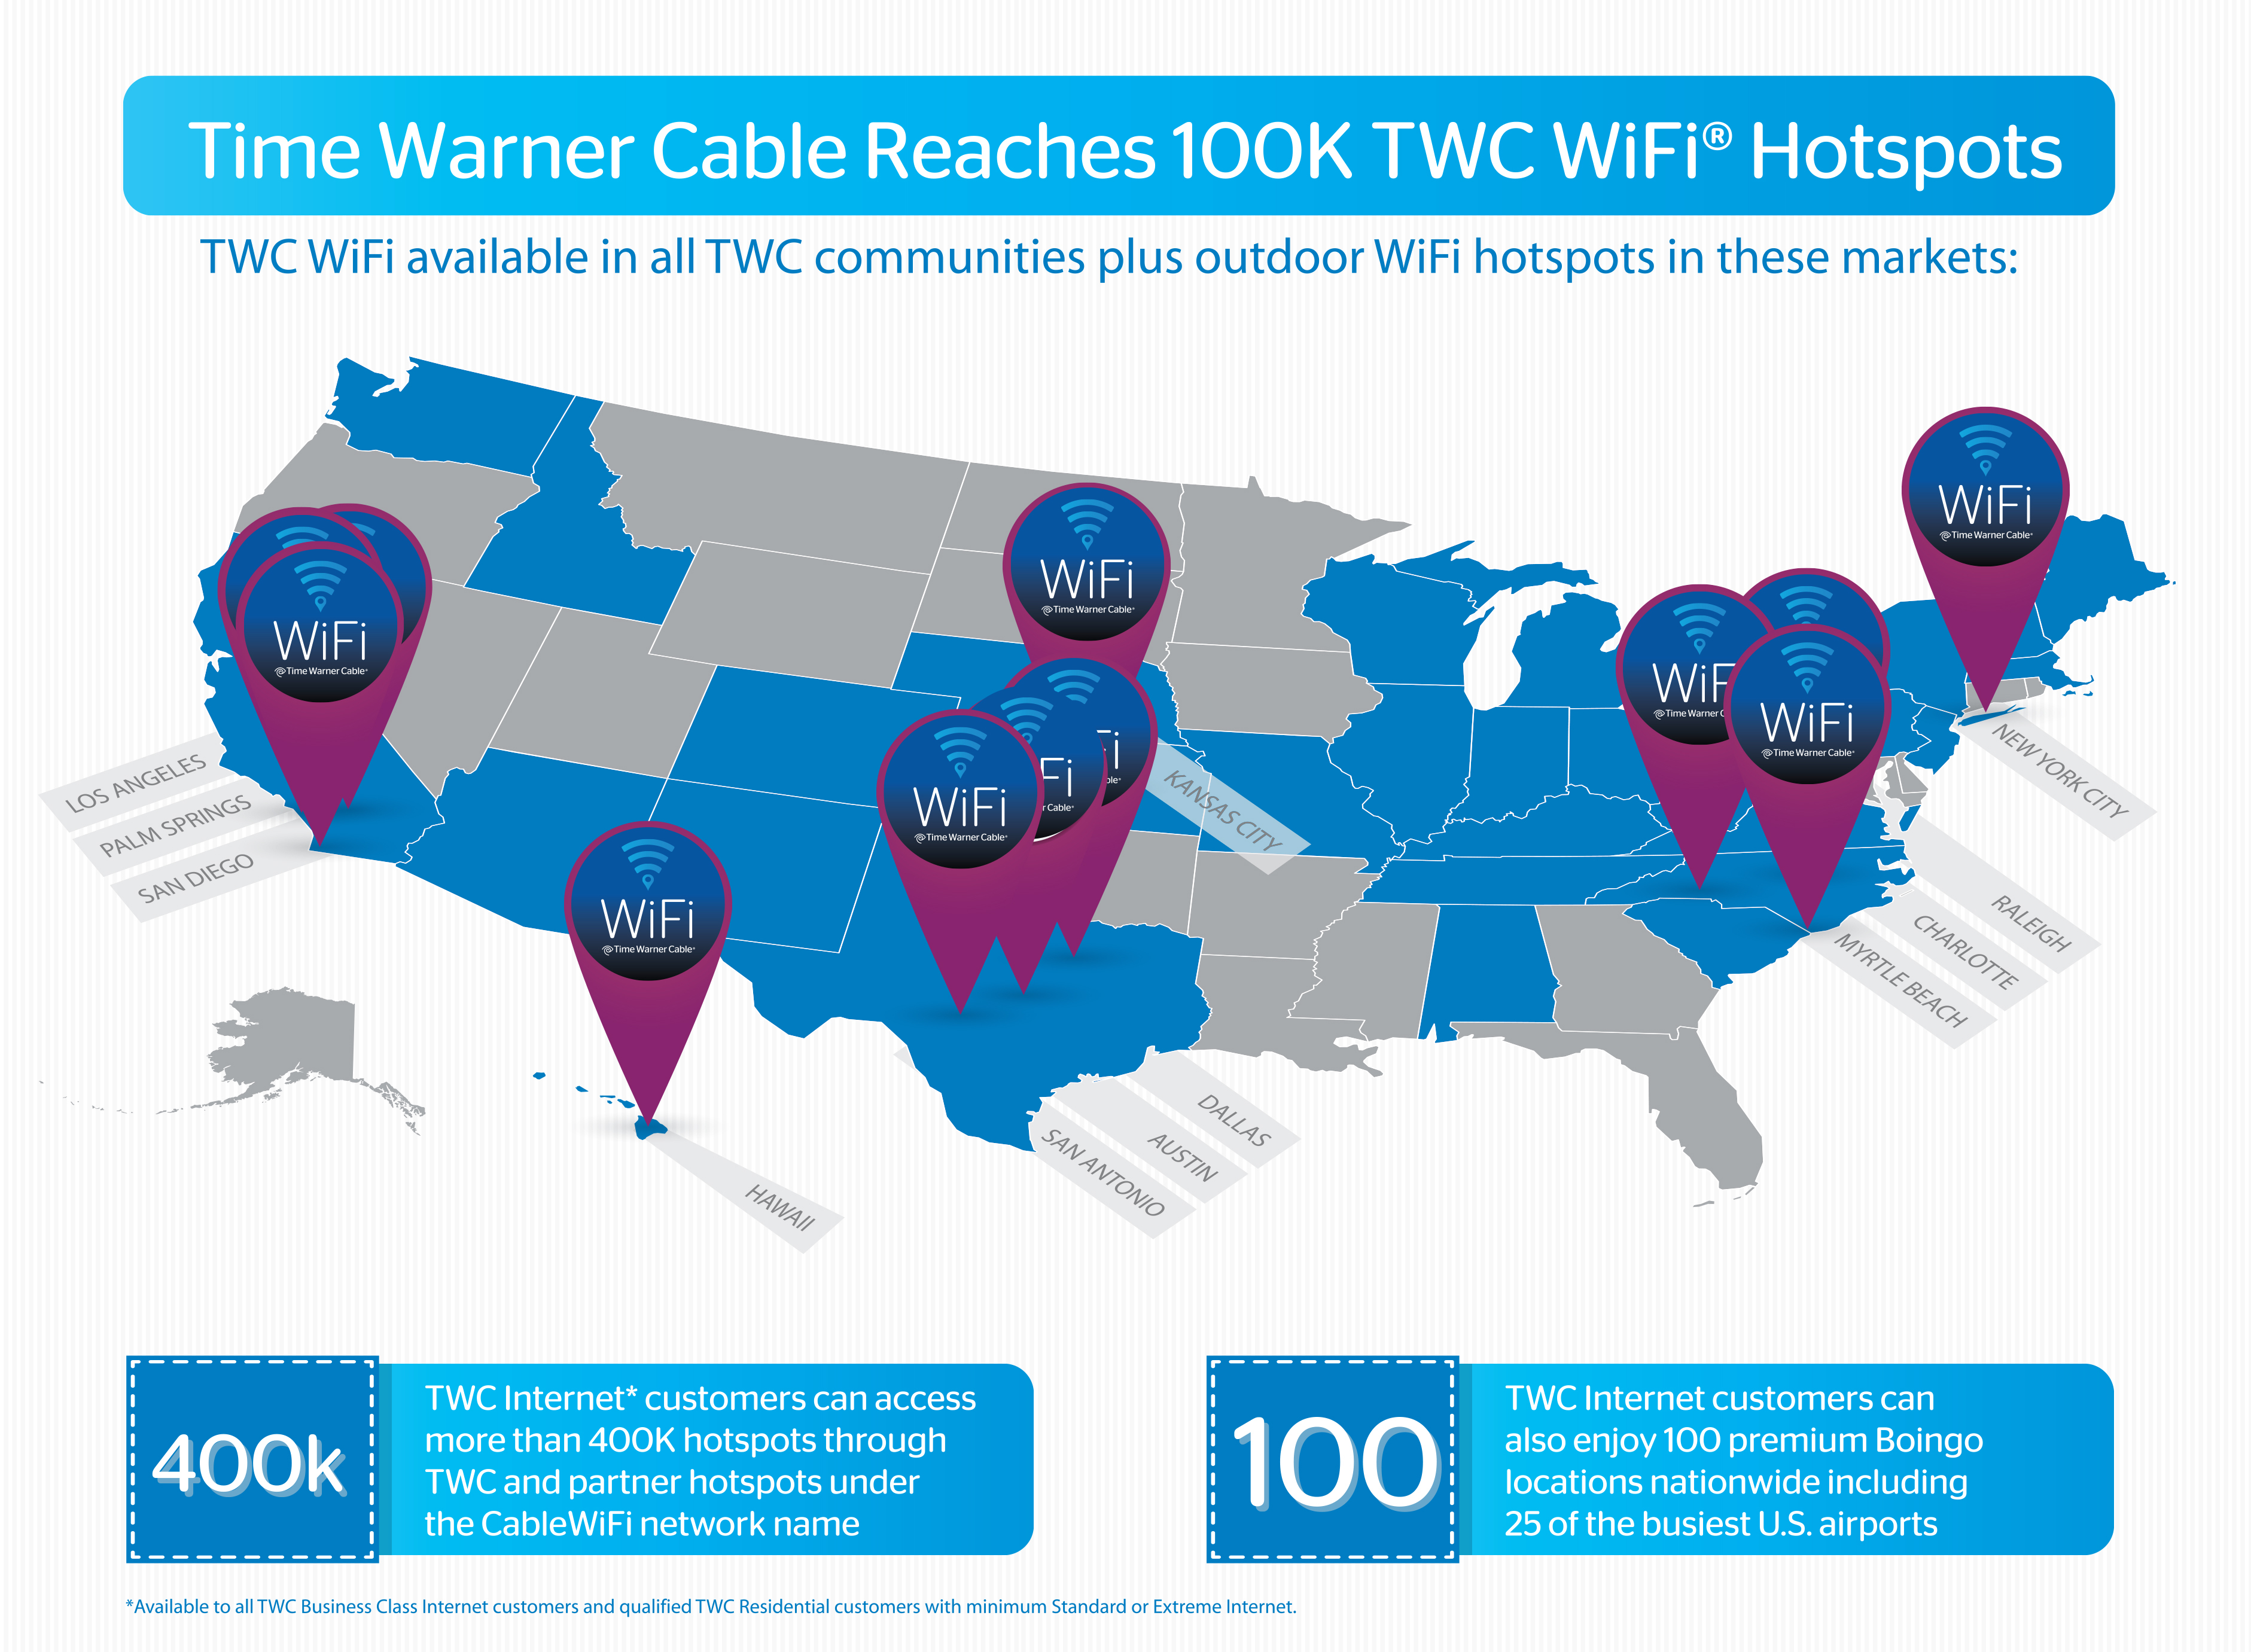 time warner cable wifi network grows to more than 100k twc wifi full size